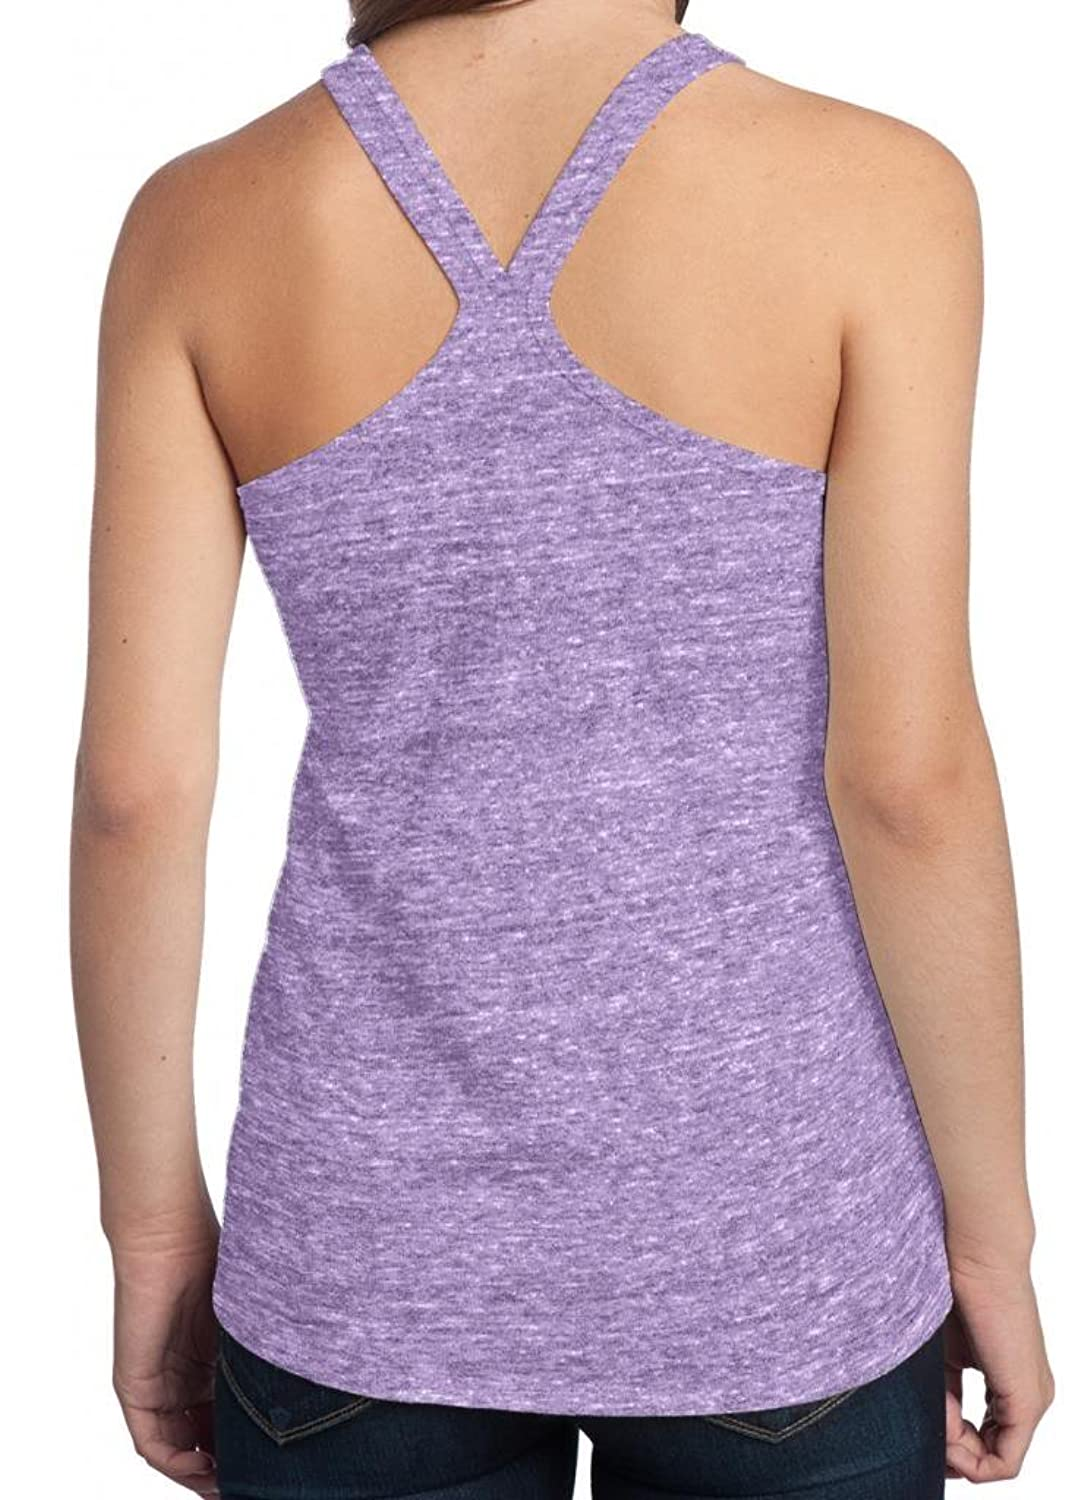 """Bendy People"" Ladies Copy Cat Cute T-back Yoga Tank Top"